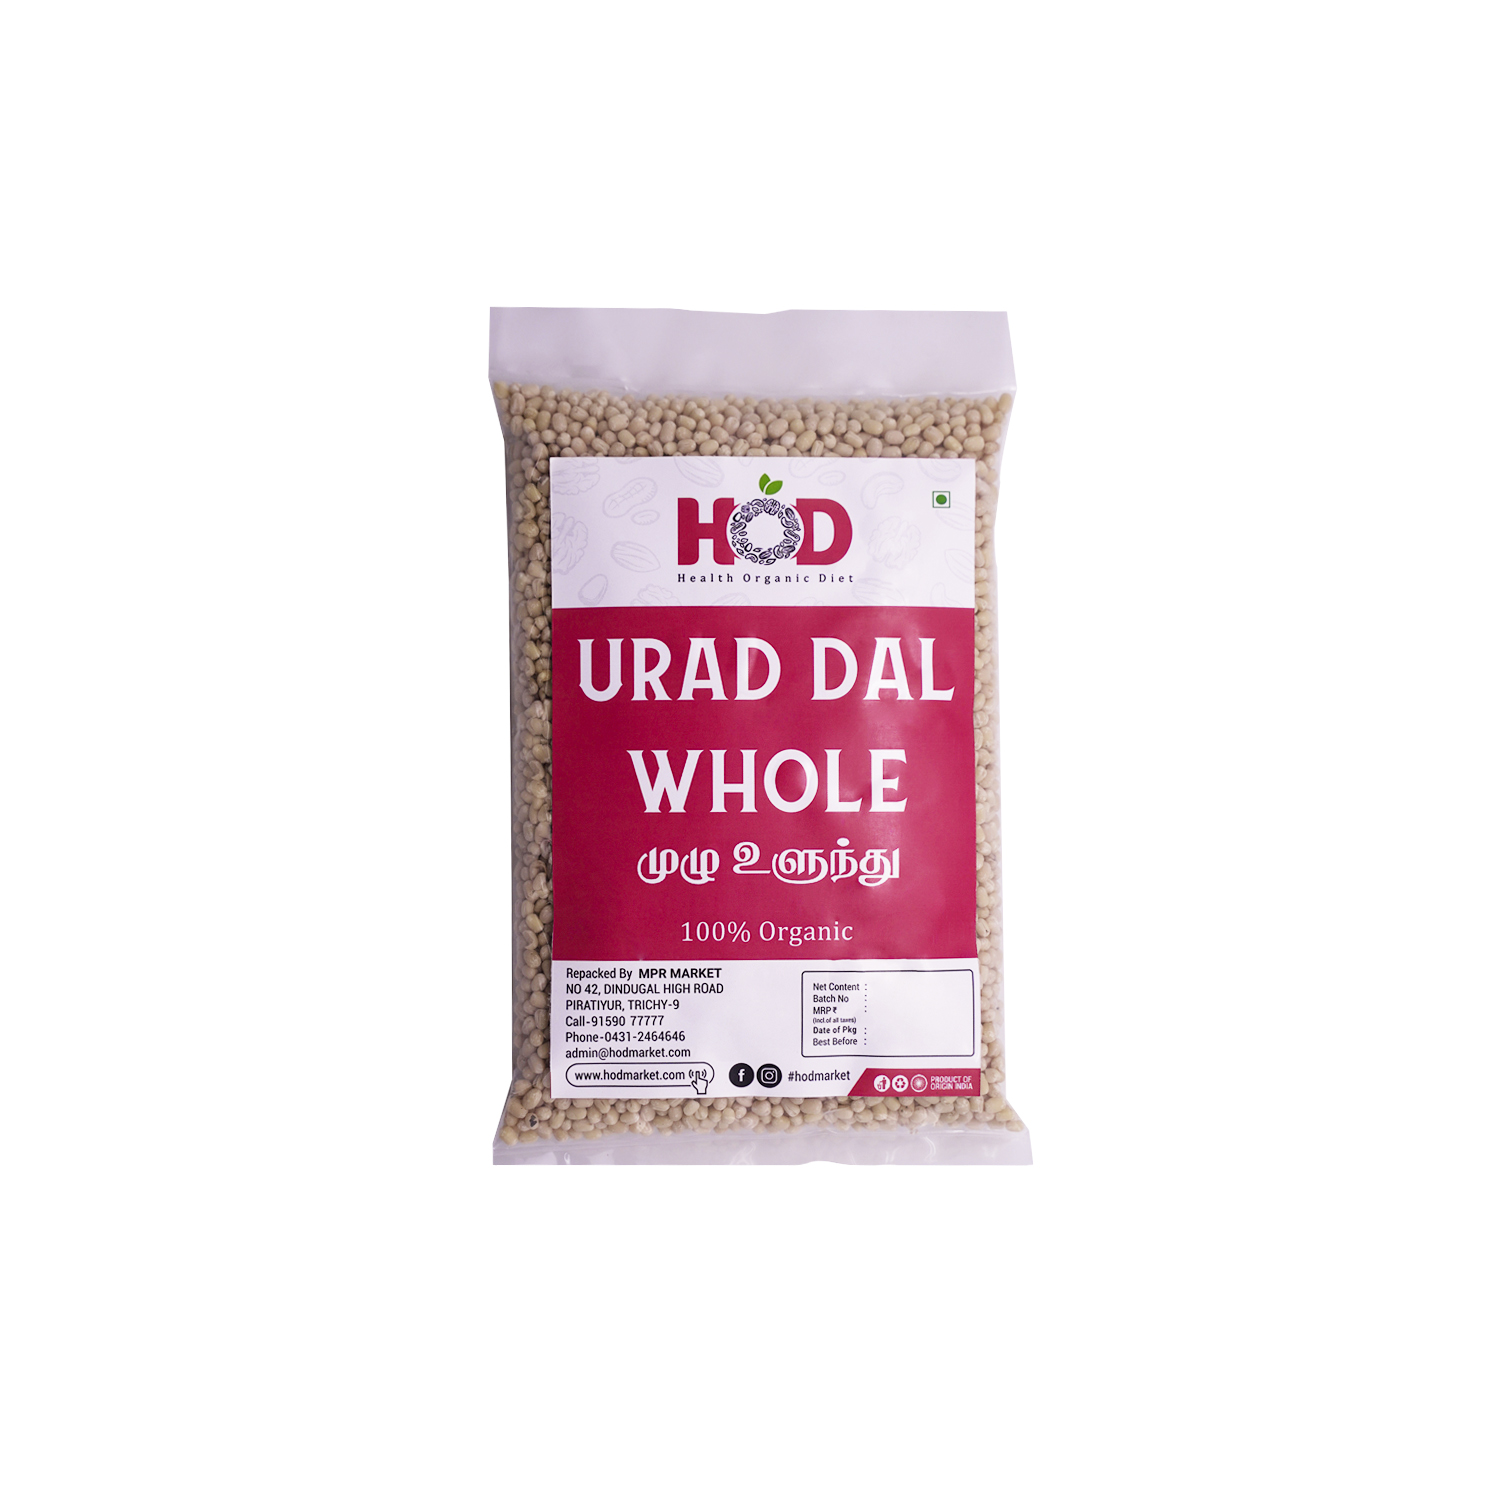 HOD- URAD DAL WHOLE/MULU ULUNDU 500G